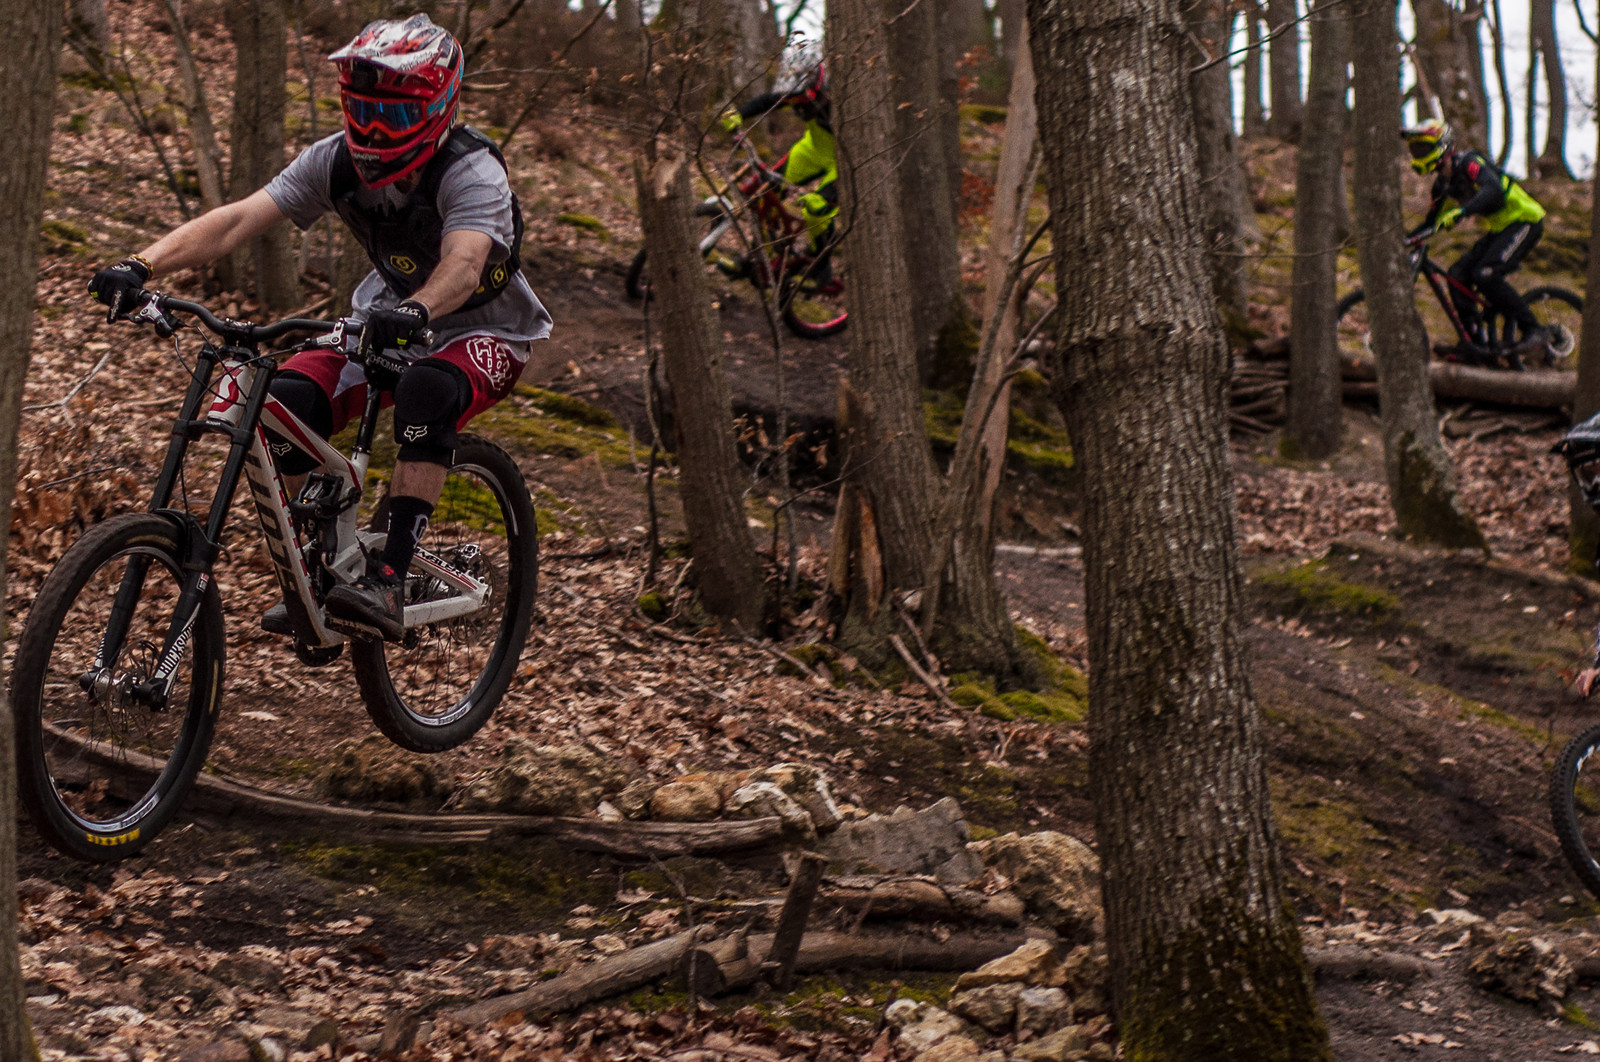 With the homies  - Romuald_Manach - Mountain Biking Pictures - Vital MTB